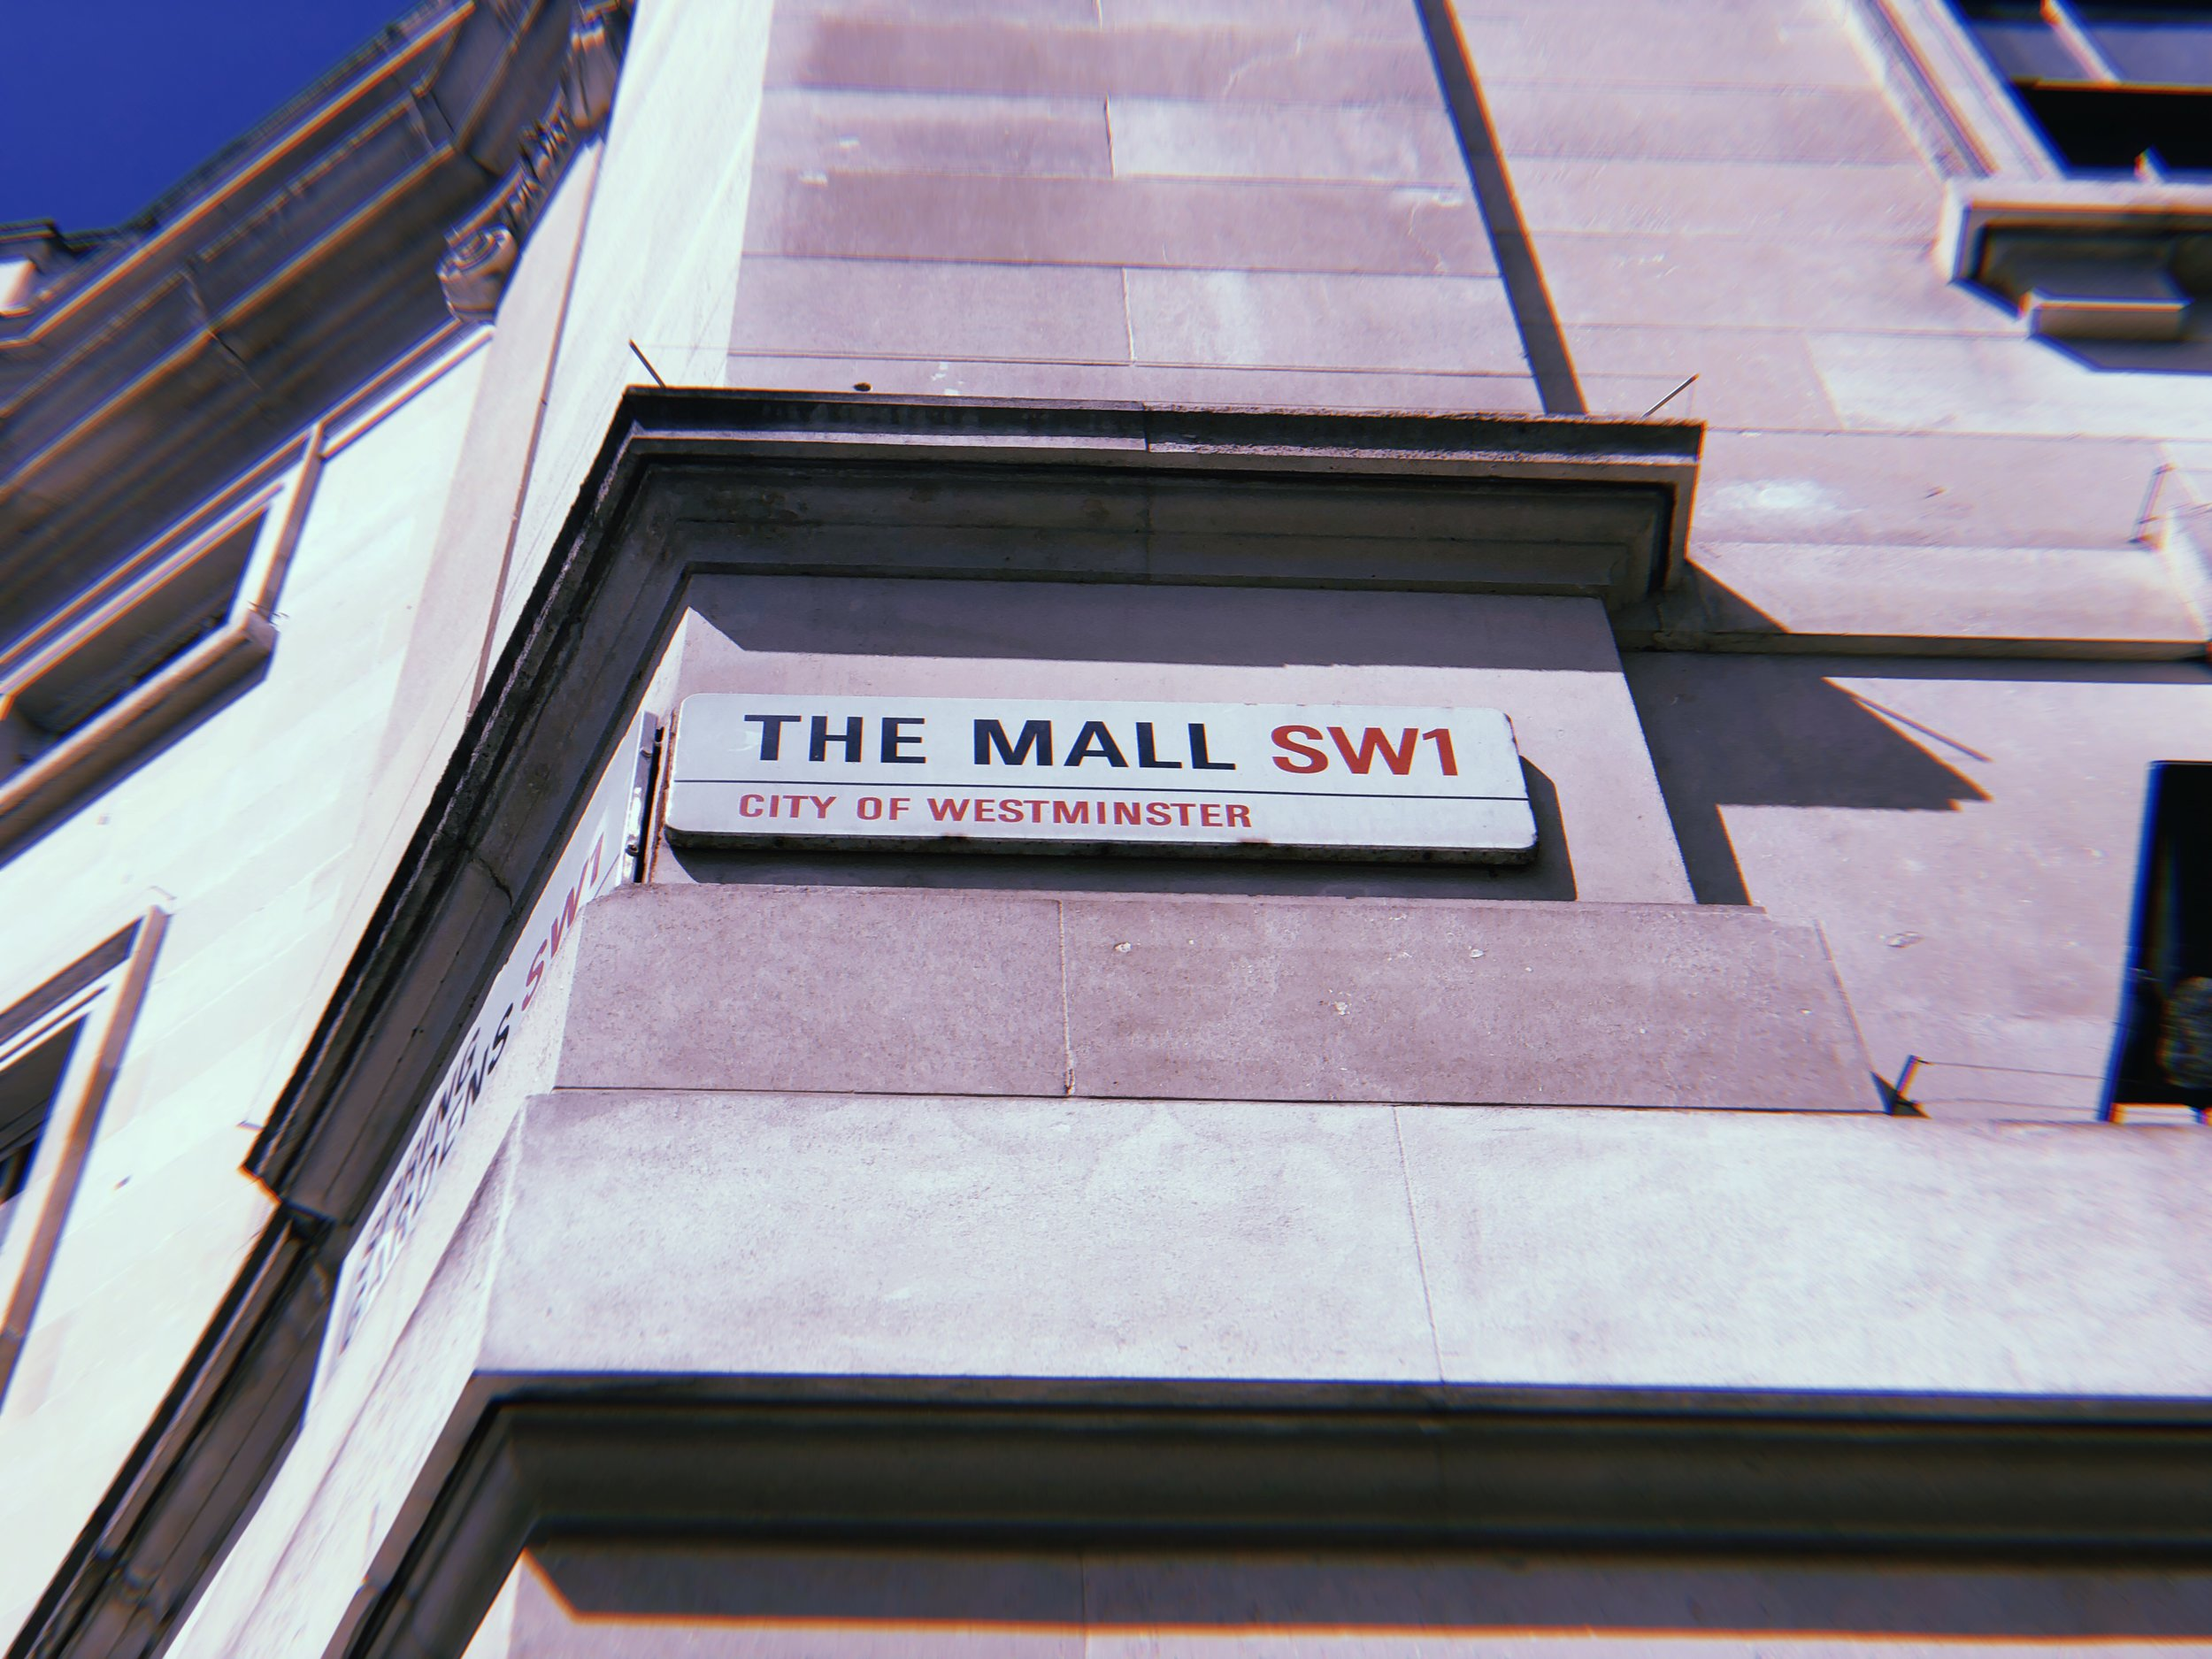 The Mall (that isn't a mall)